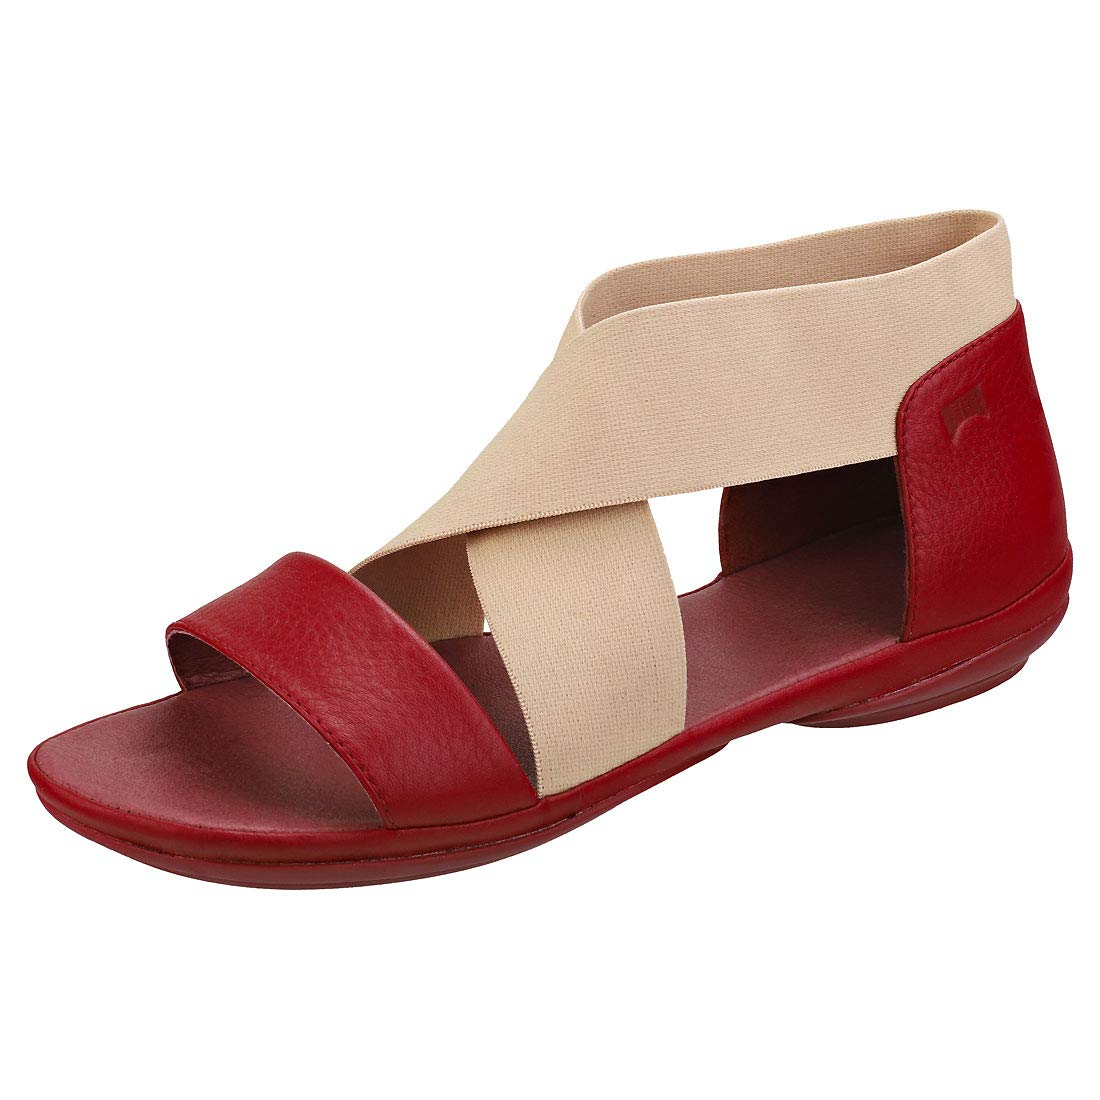 Camper Right Nina Crossover Sella Womens Slip On Sandals in Red - 36 EU